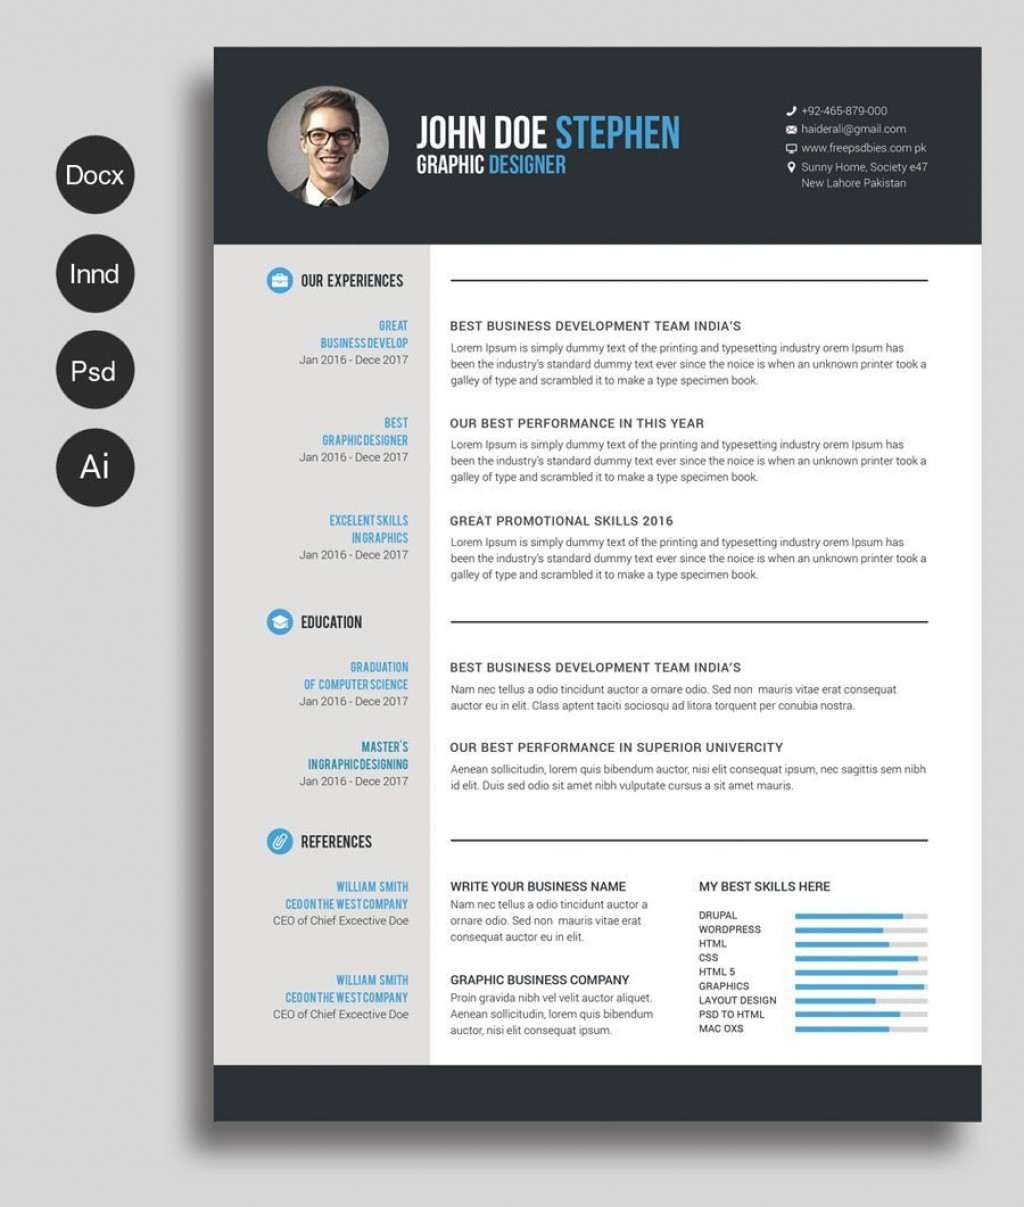 000 Unusual Resume Template Word 2003 Free Download Concept  DownloadsLarge